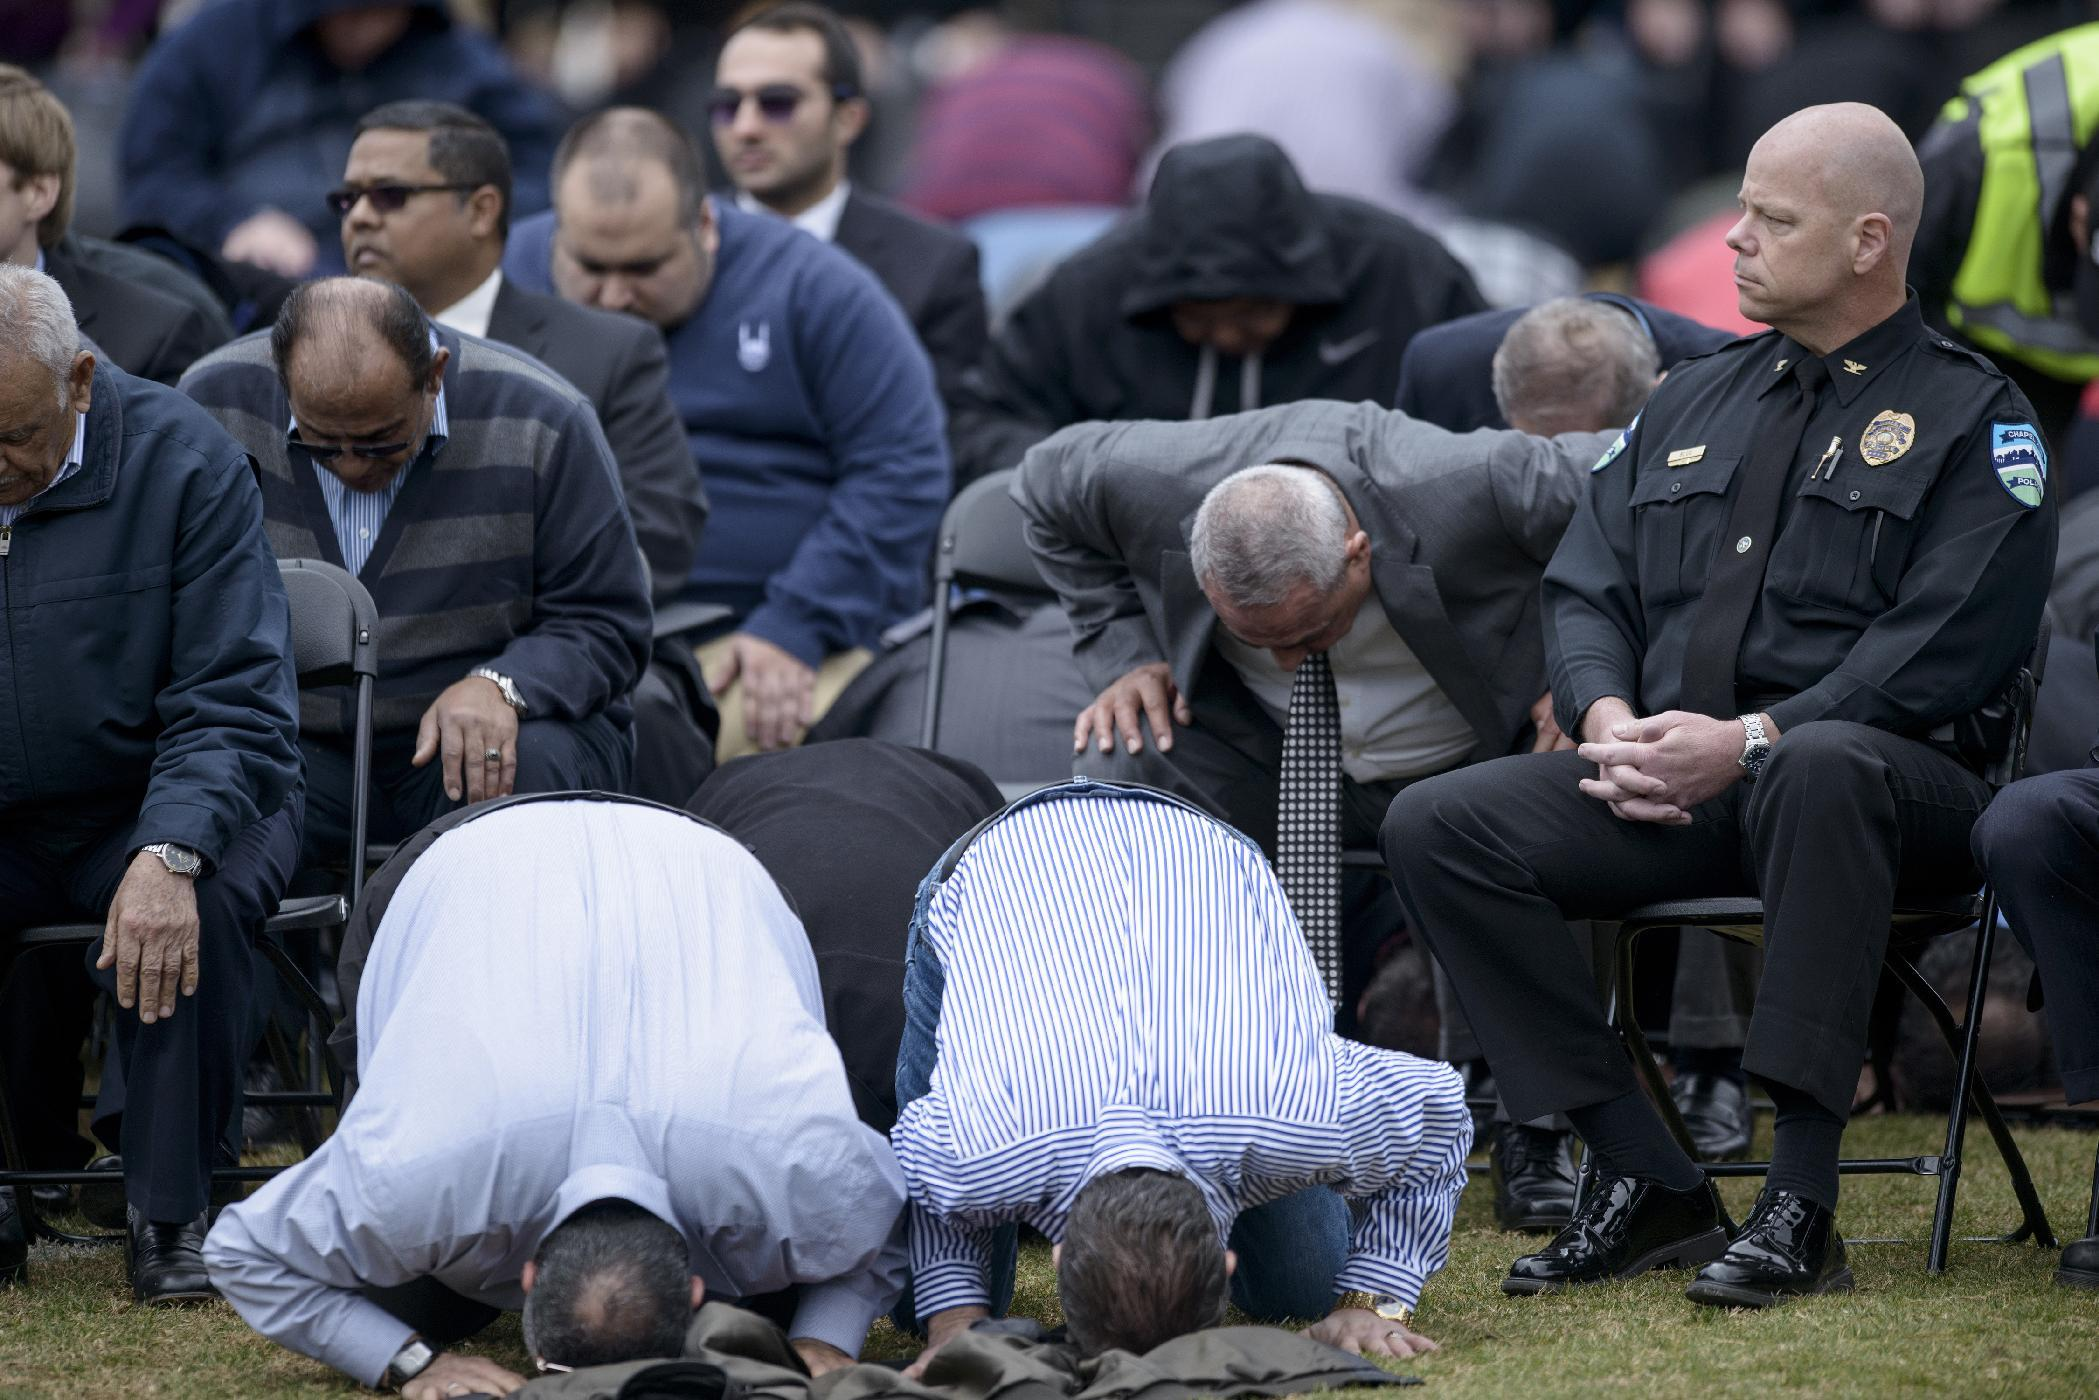 Chapel Hill Police Chief Chris Blue (R) listens as people pray during a service in a soccer field near the Islamic Association of Raleigh February 12, 2015, in Raleigh, North Carolina (AFP Photo/Brendan Smialowski)